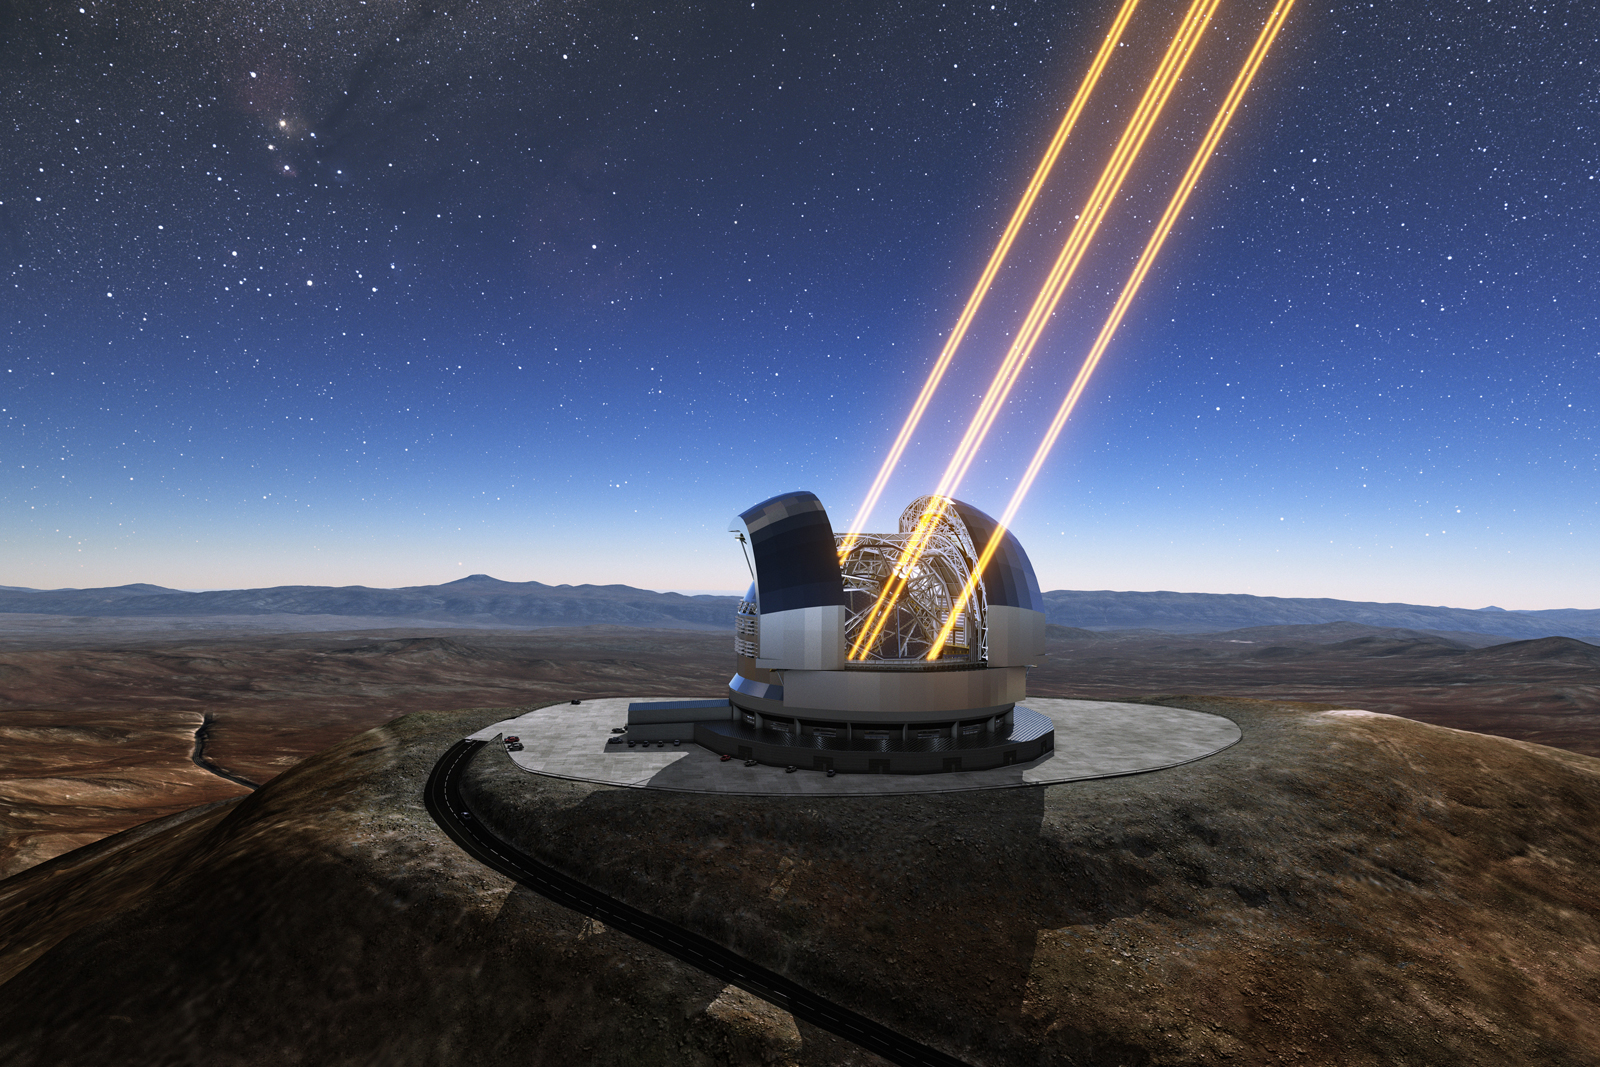 Construction starts on the world's largest optical telescope